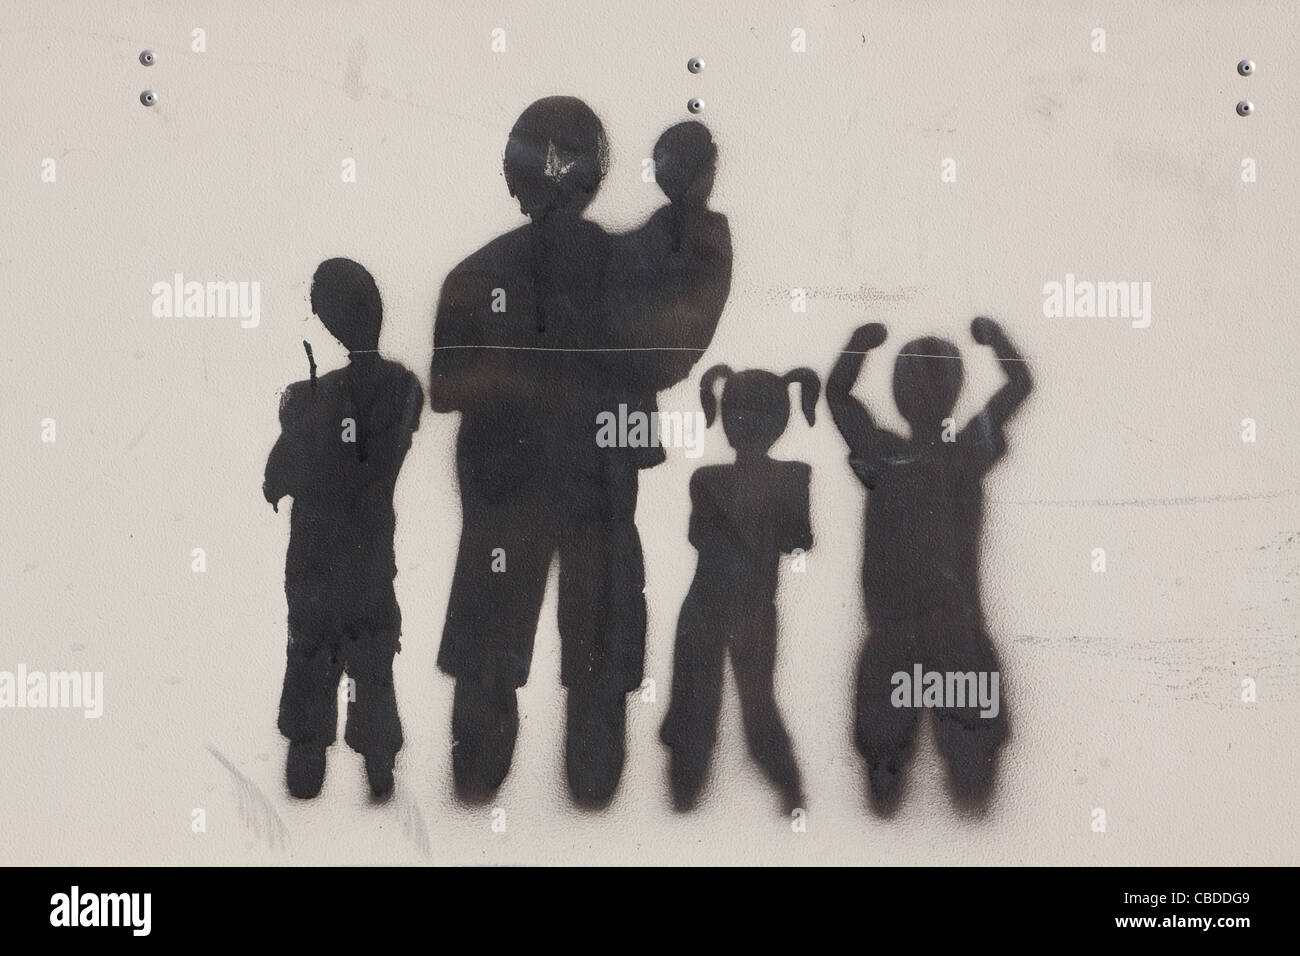 Stencil graffiti of a family - Stock Image